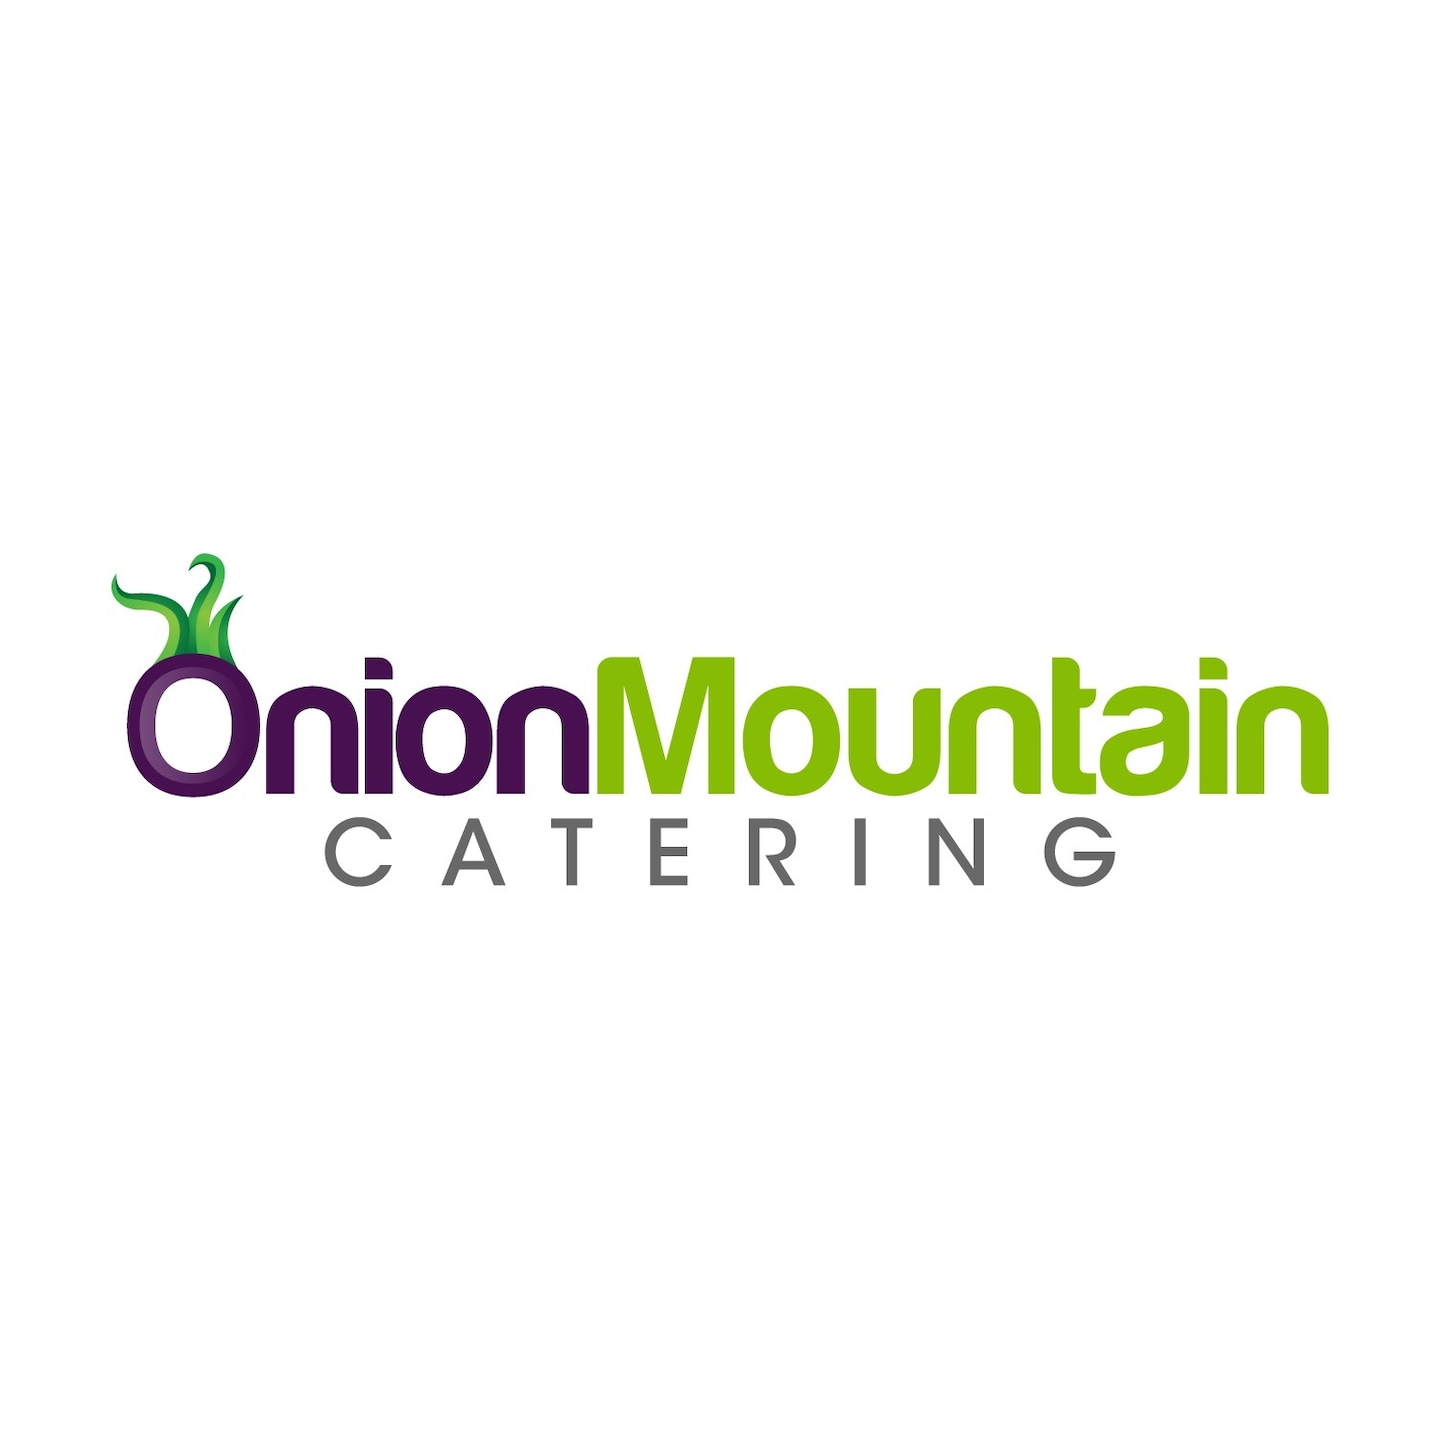 Onion Mountain Catering